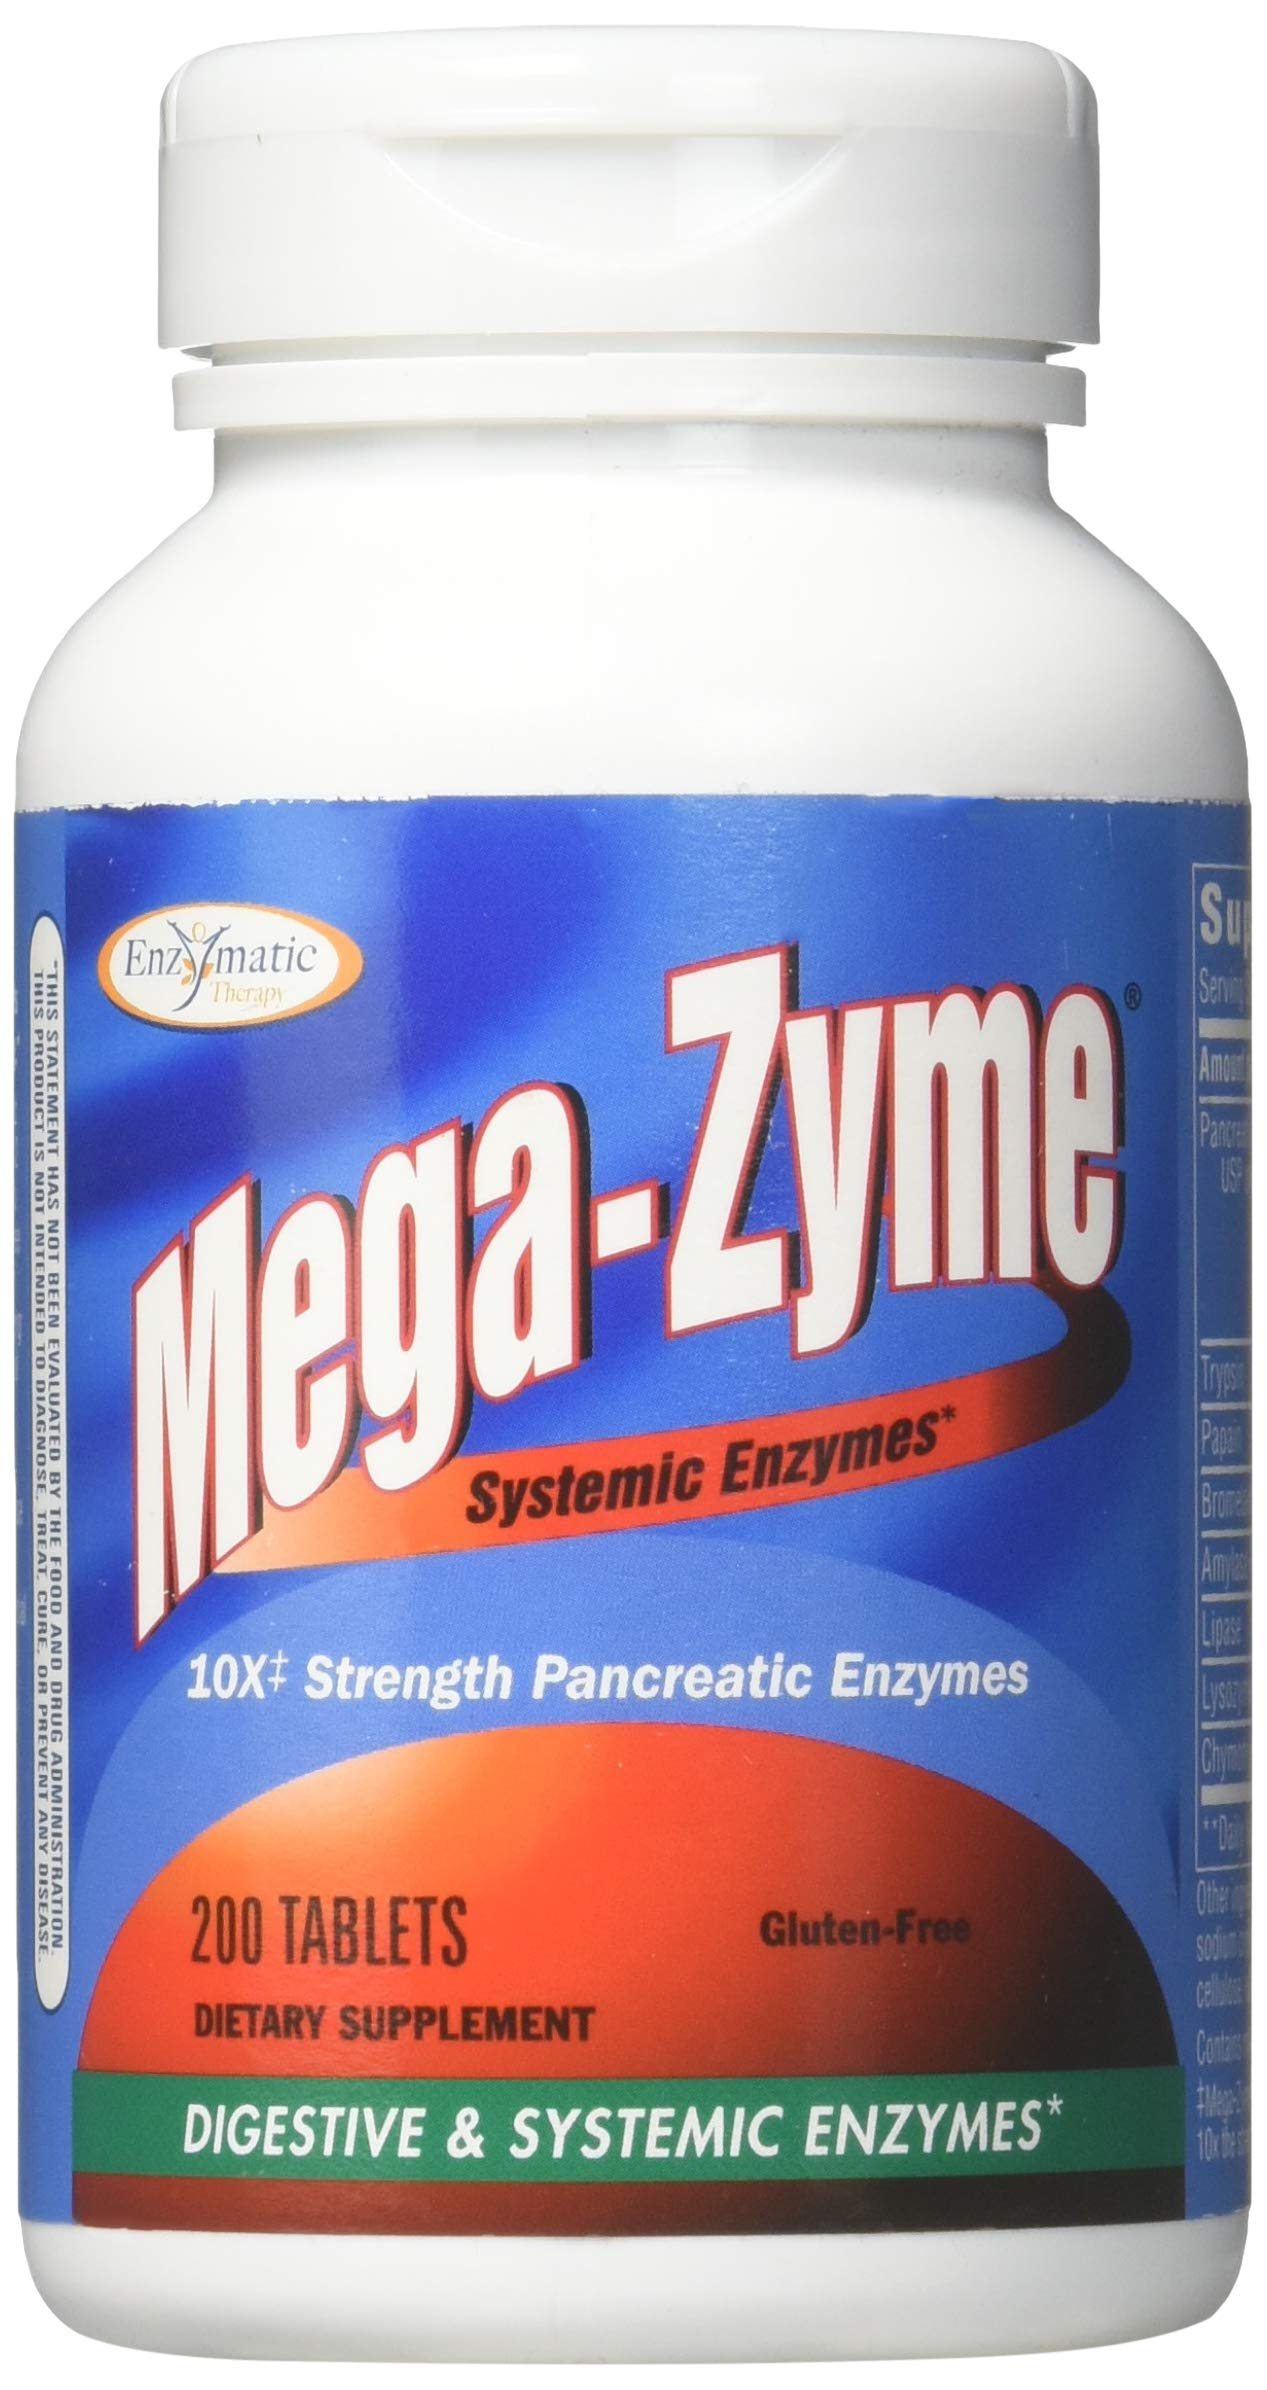 Enzymatic Therapy Mega-Zyme Gluten-Free 10X Strength Pancreatic Enzymes, 200 Count by Enzymatic Therapy